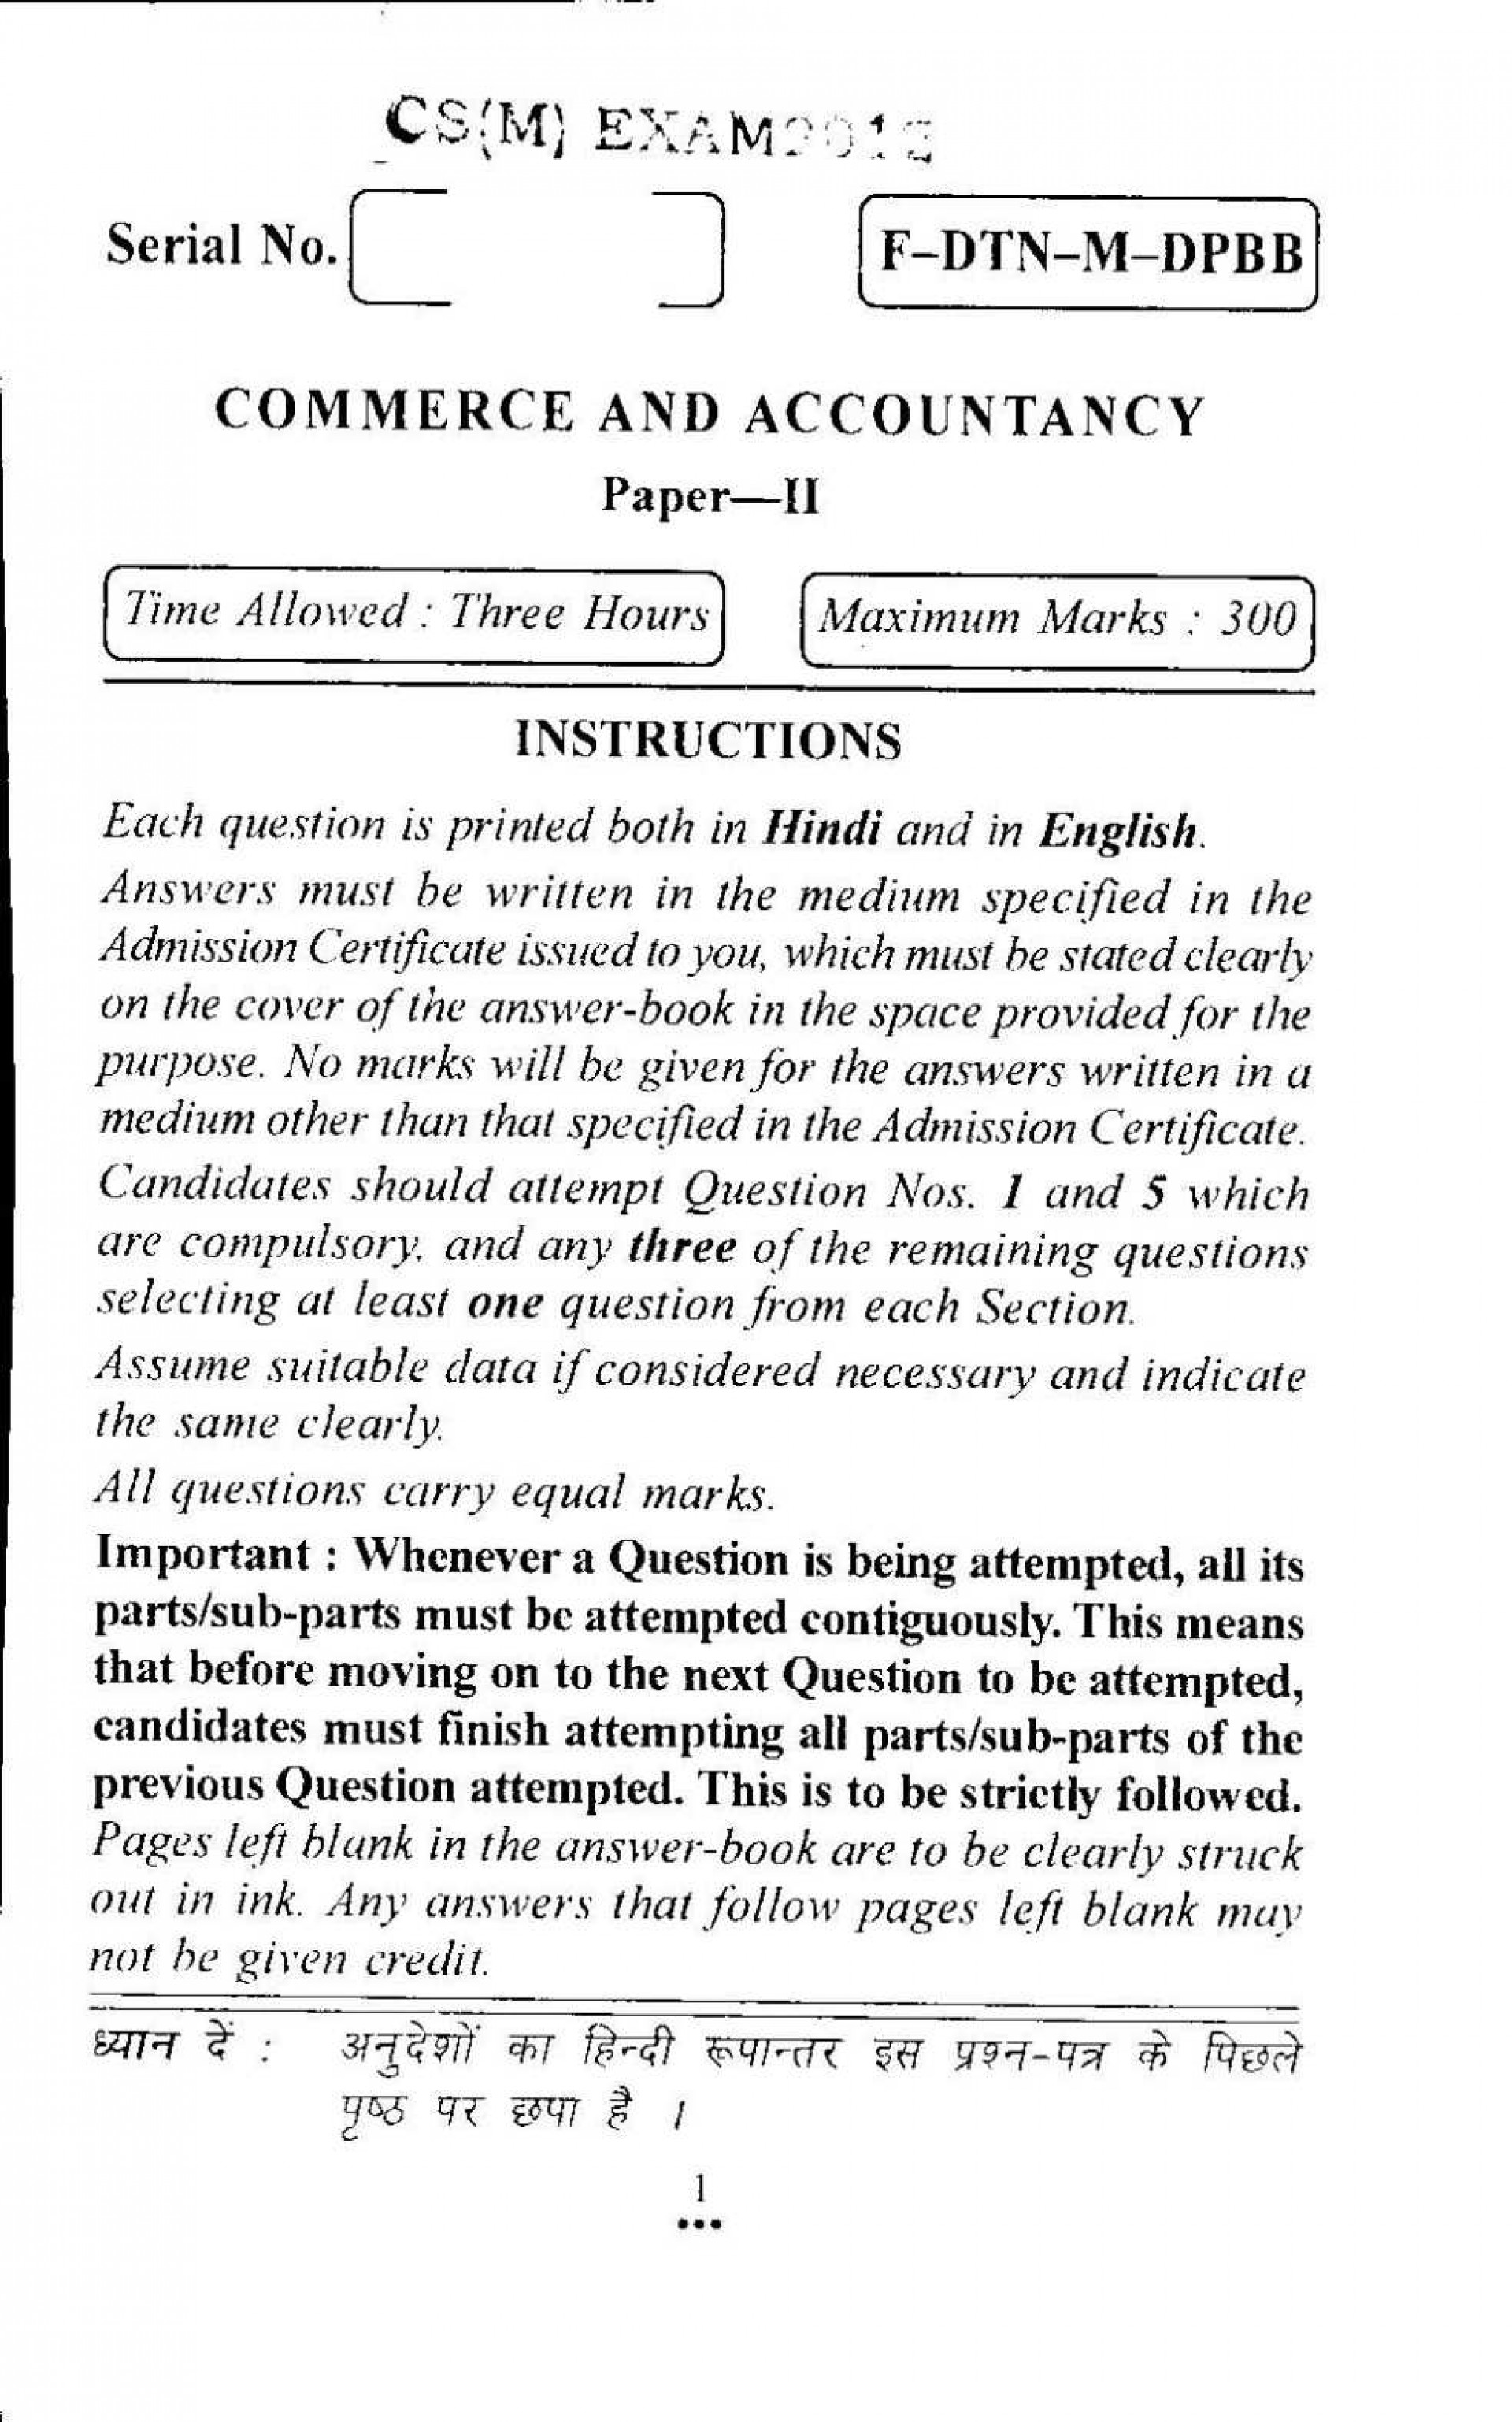 007 Racism Today Essay Civil Services Examination Commerce And Accountancy Paper Ii Previous Years Que Dreaded 1920